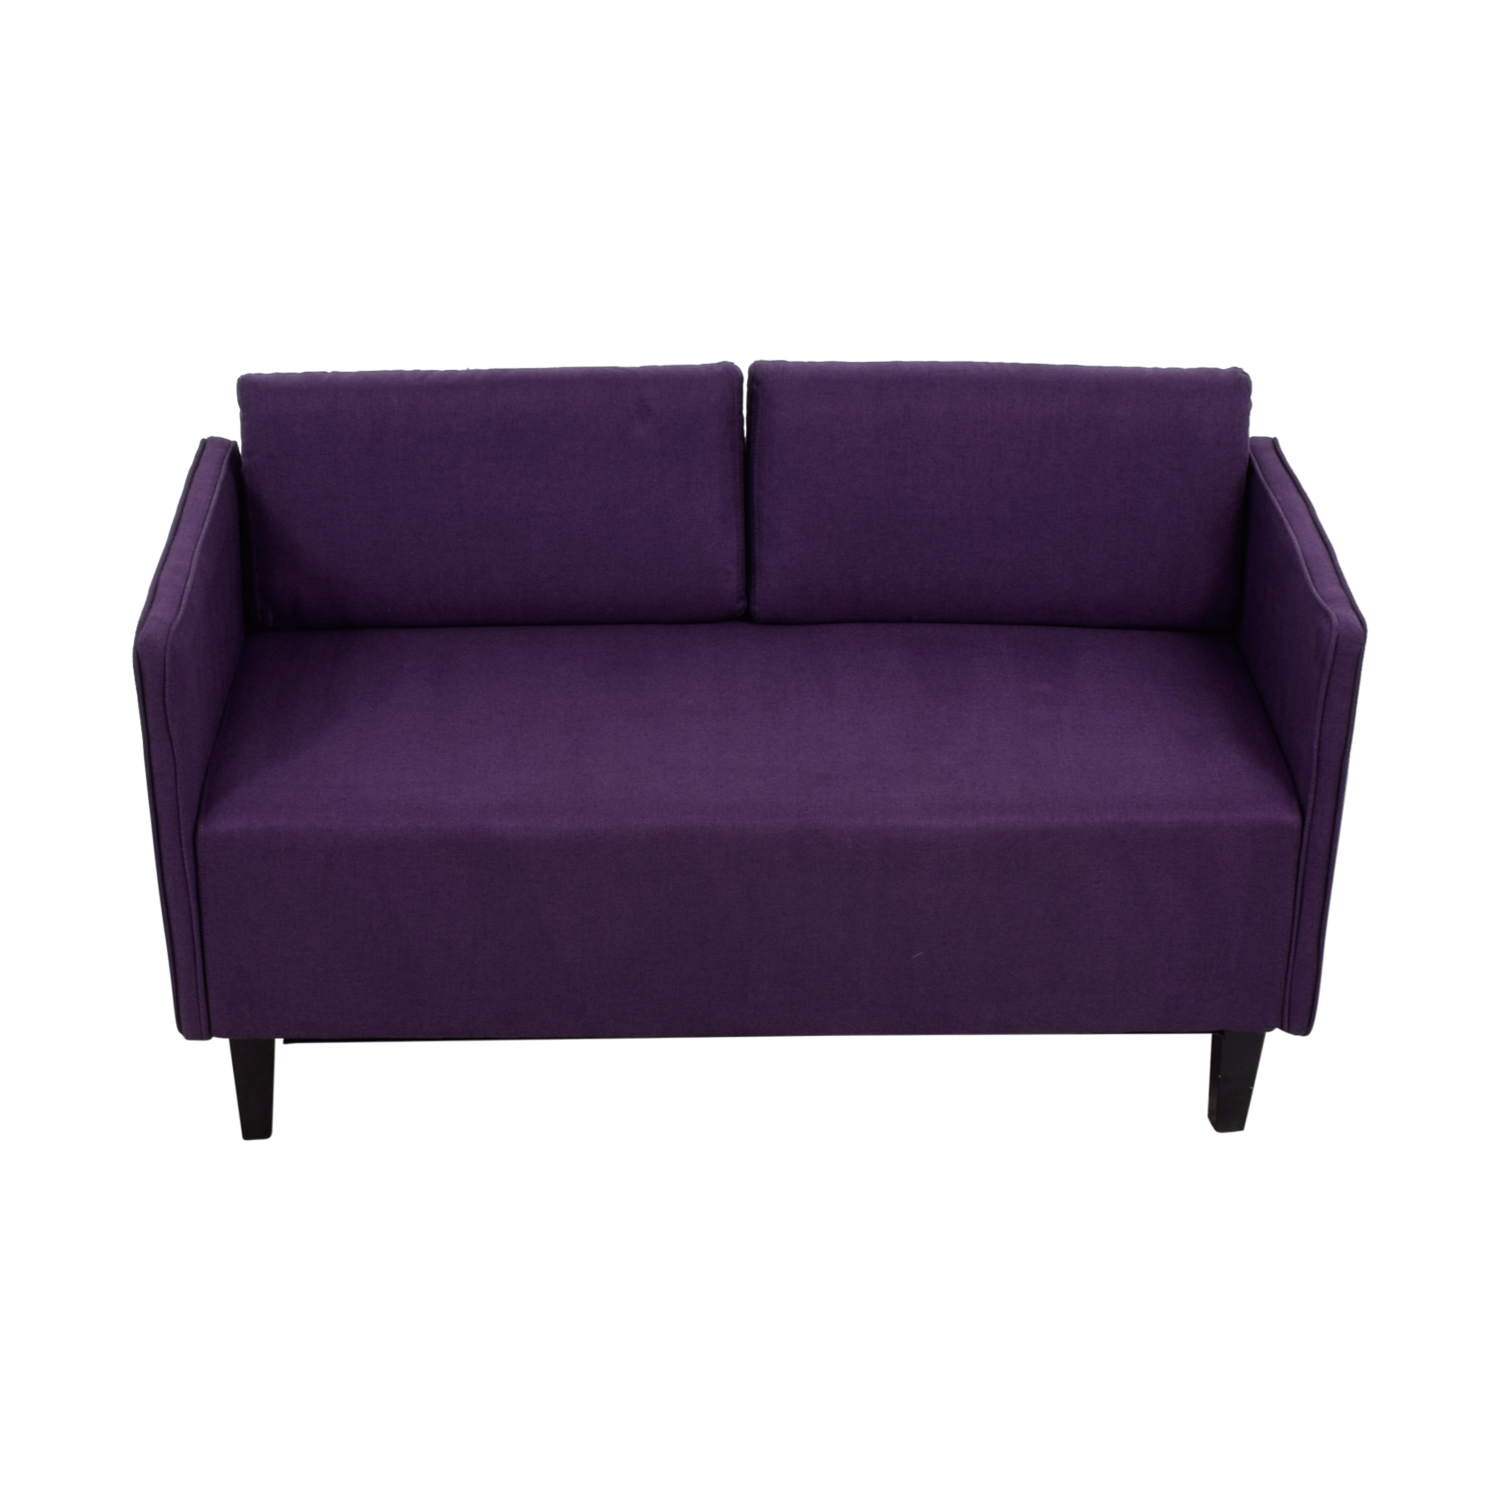 shop Ebern Designs Dempsey Purple Herringbone Loveseat Ebern Designs Sofas